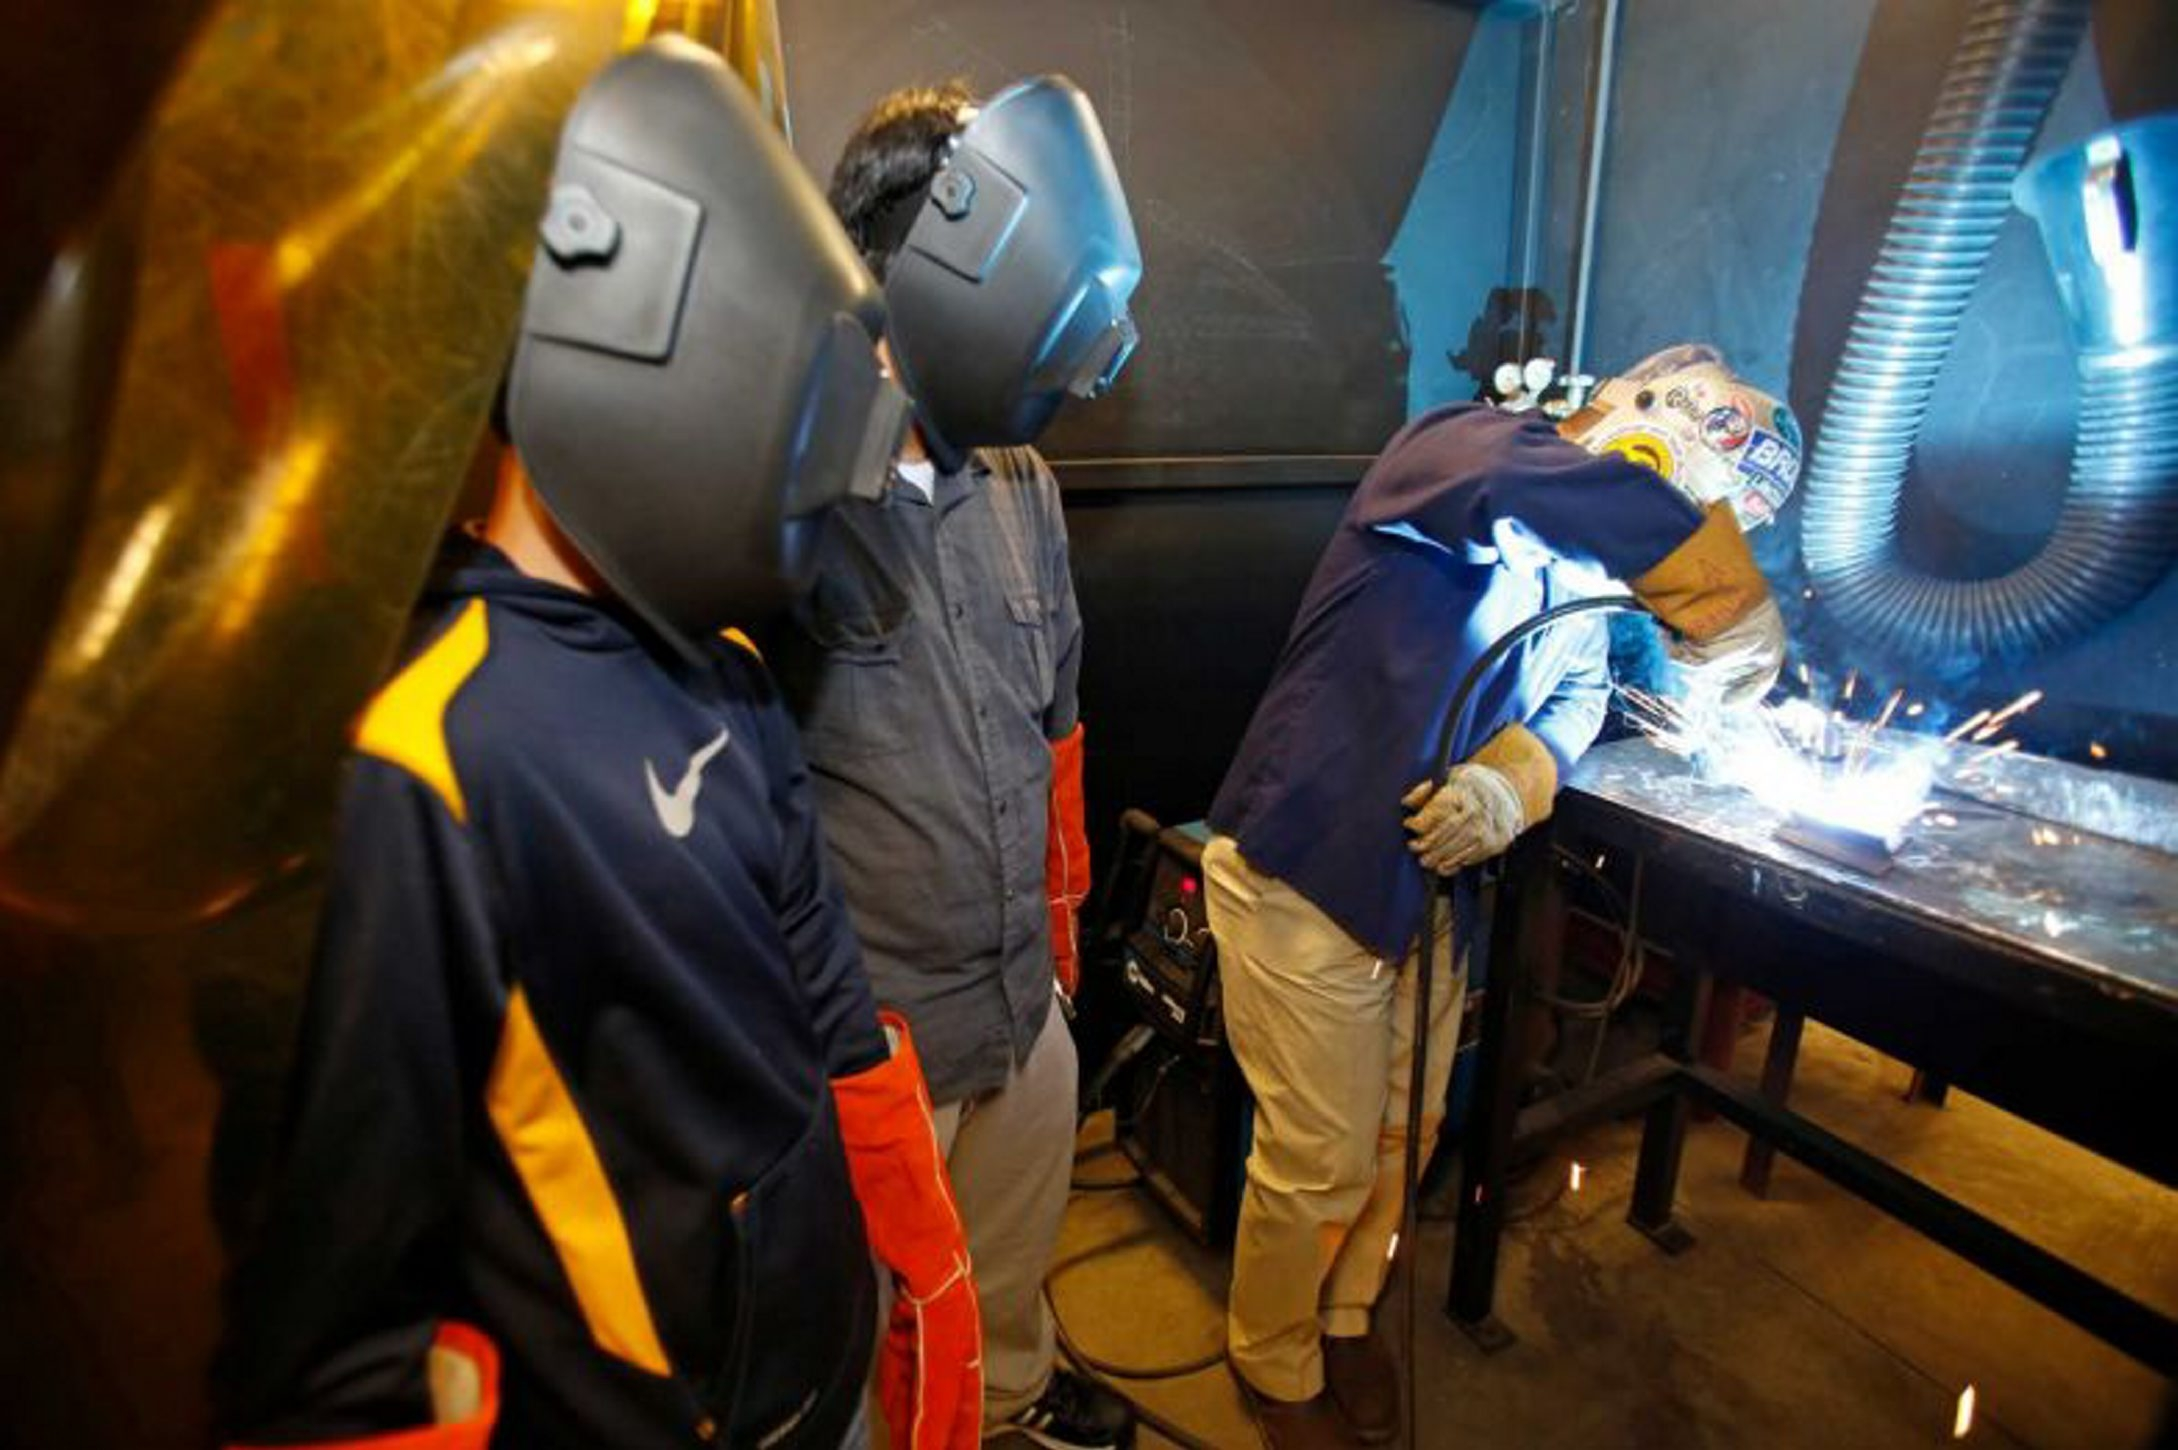 High school students Jose Henner, left, and Alejandro Ibarra watch as Alberto Urbina does a welding demonstration.